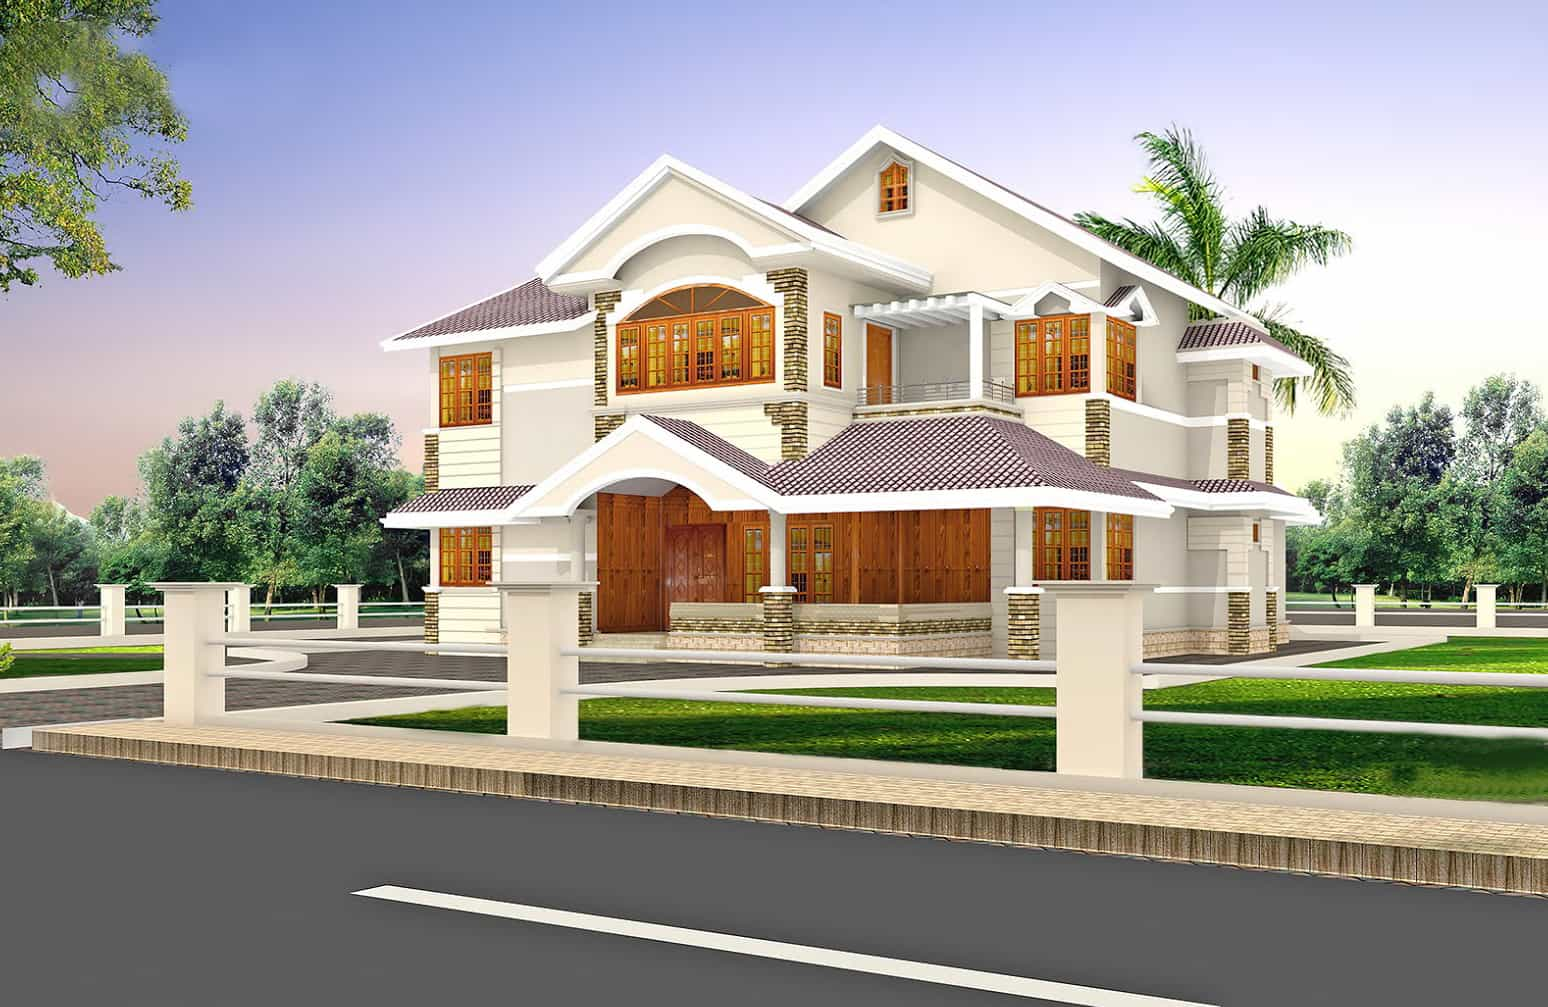 4bhk house plans keralahouseplanner 3d home design online